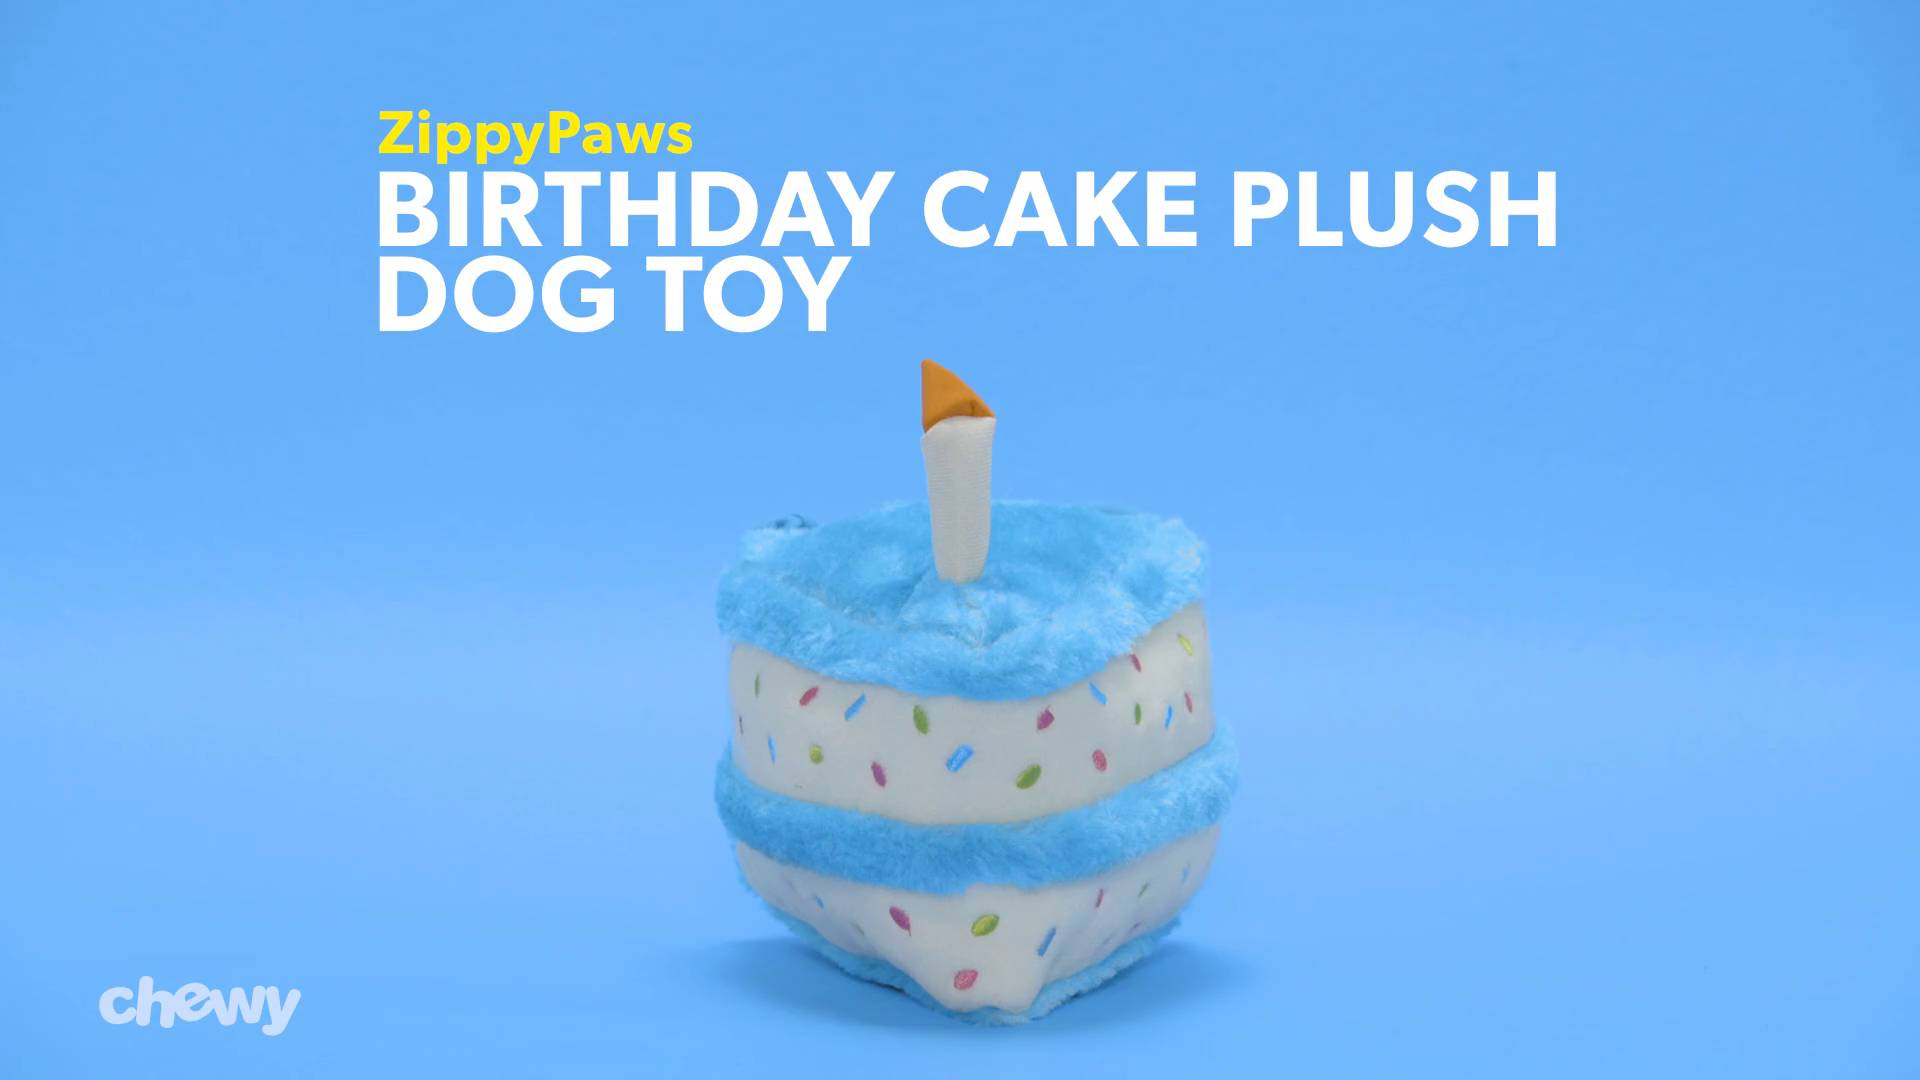 Zippypaws Birthday Cake Plush Dog Toy Blue Chewy